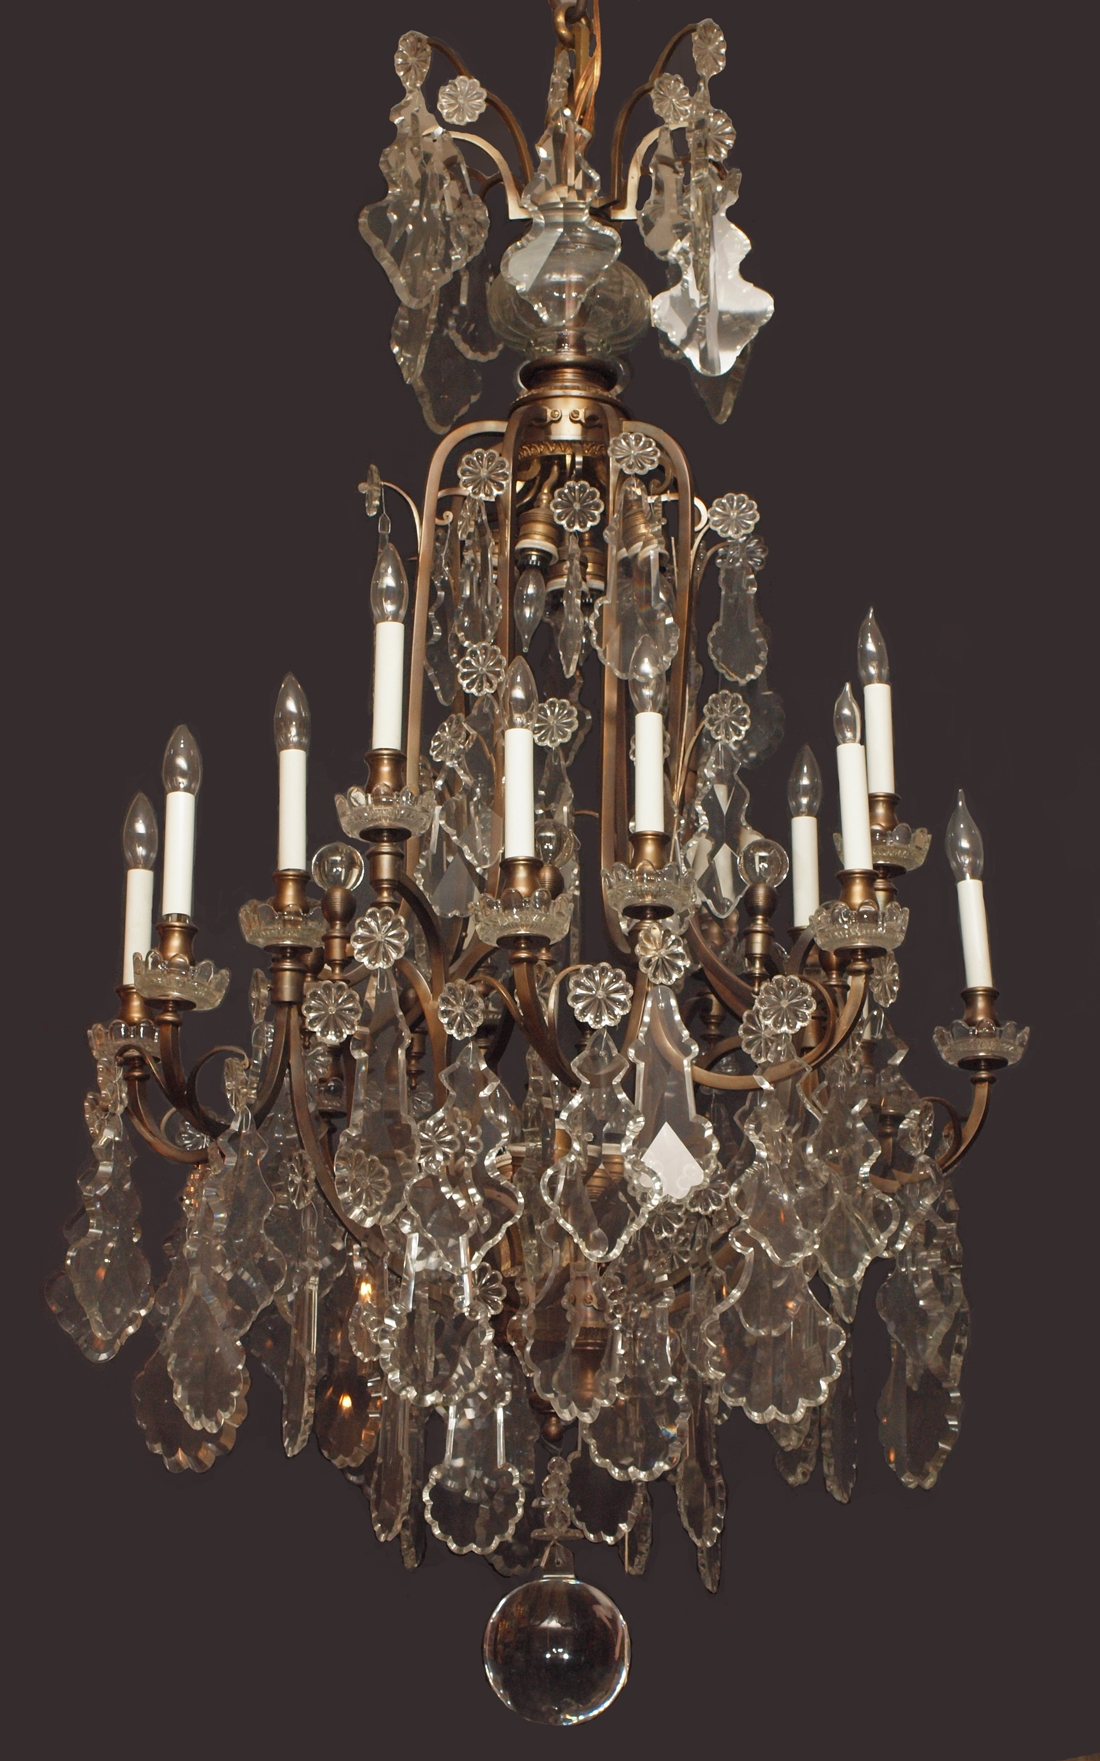 Chandeliers Baccarat Crystal Regarding French Crystal Chandeliers (#6 of 12)